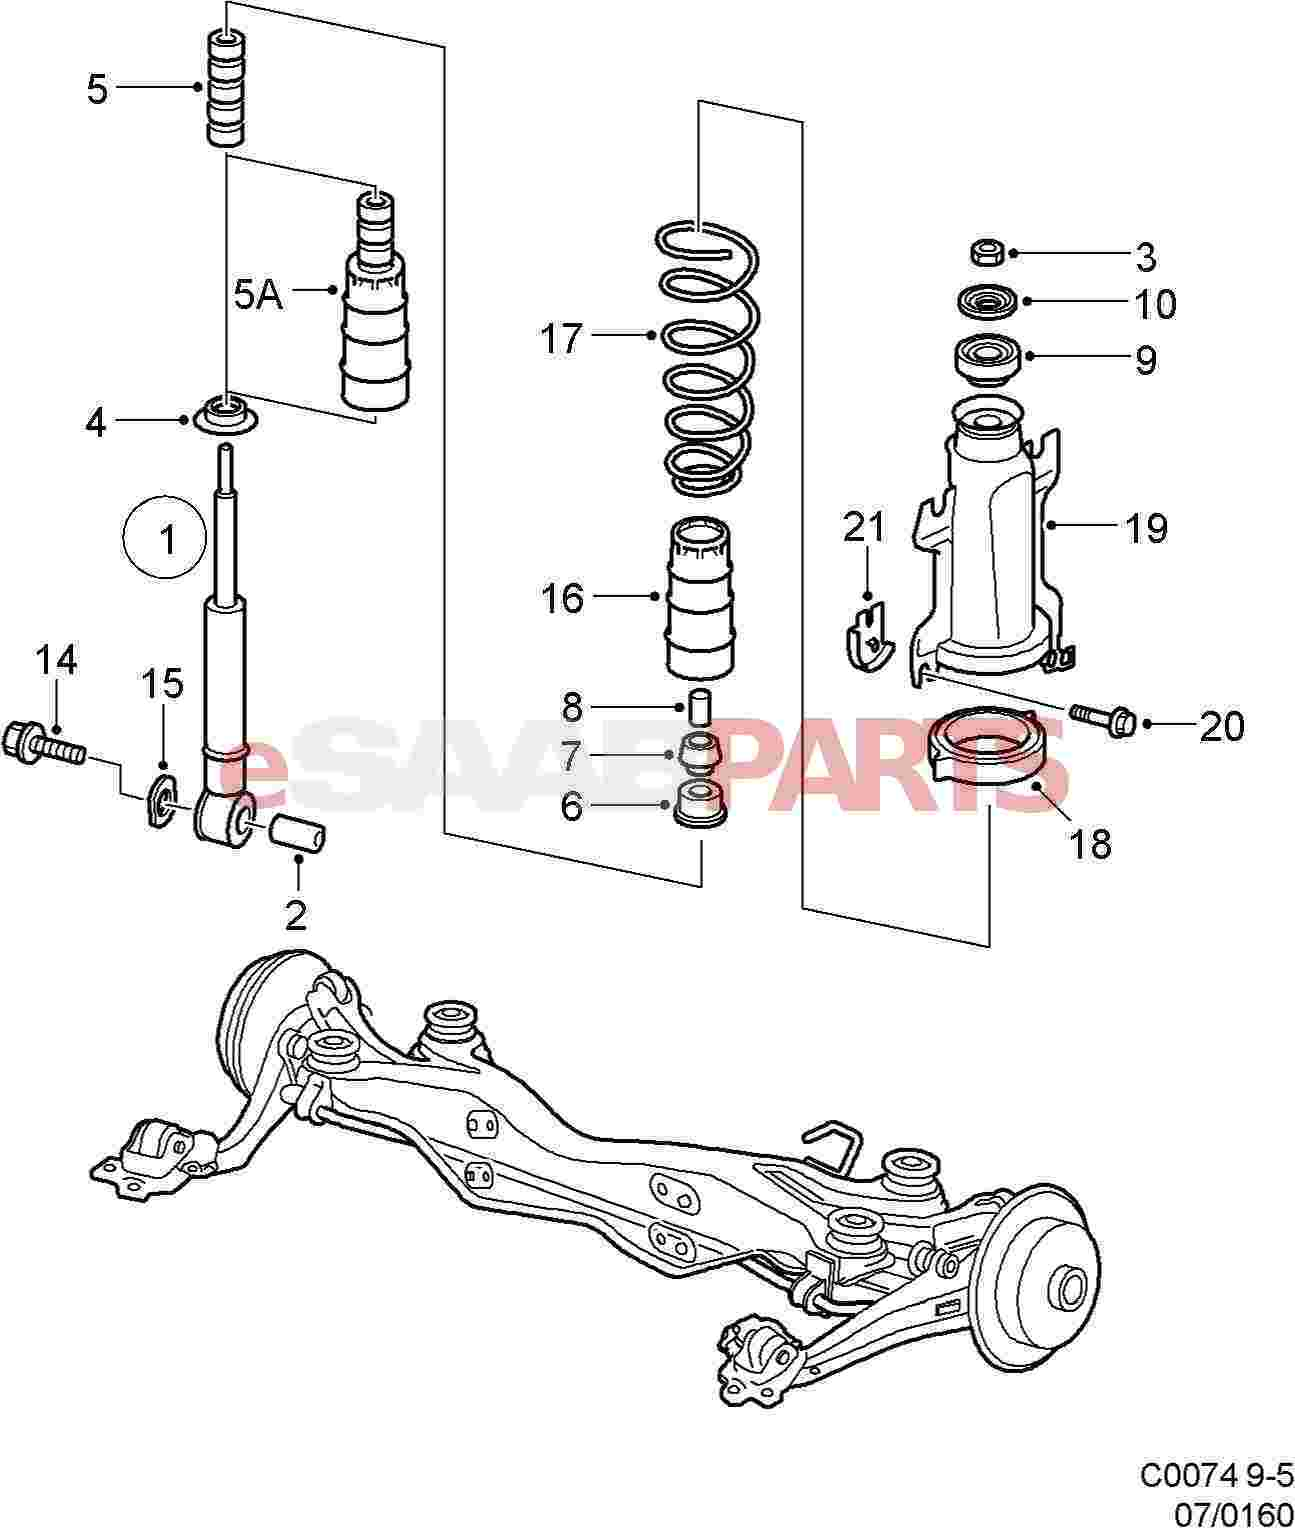 hight resolution of saab 9 5 3 0 engine diagram wiring library furthermore 2007 ford mustang heater core box diagram besides saab 9 5